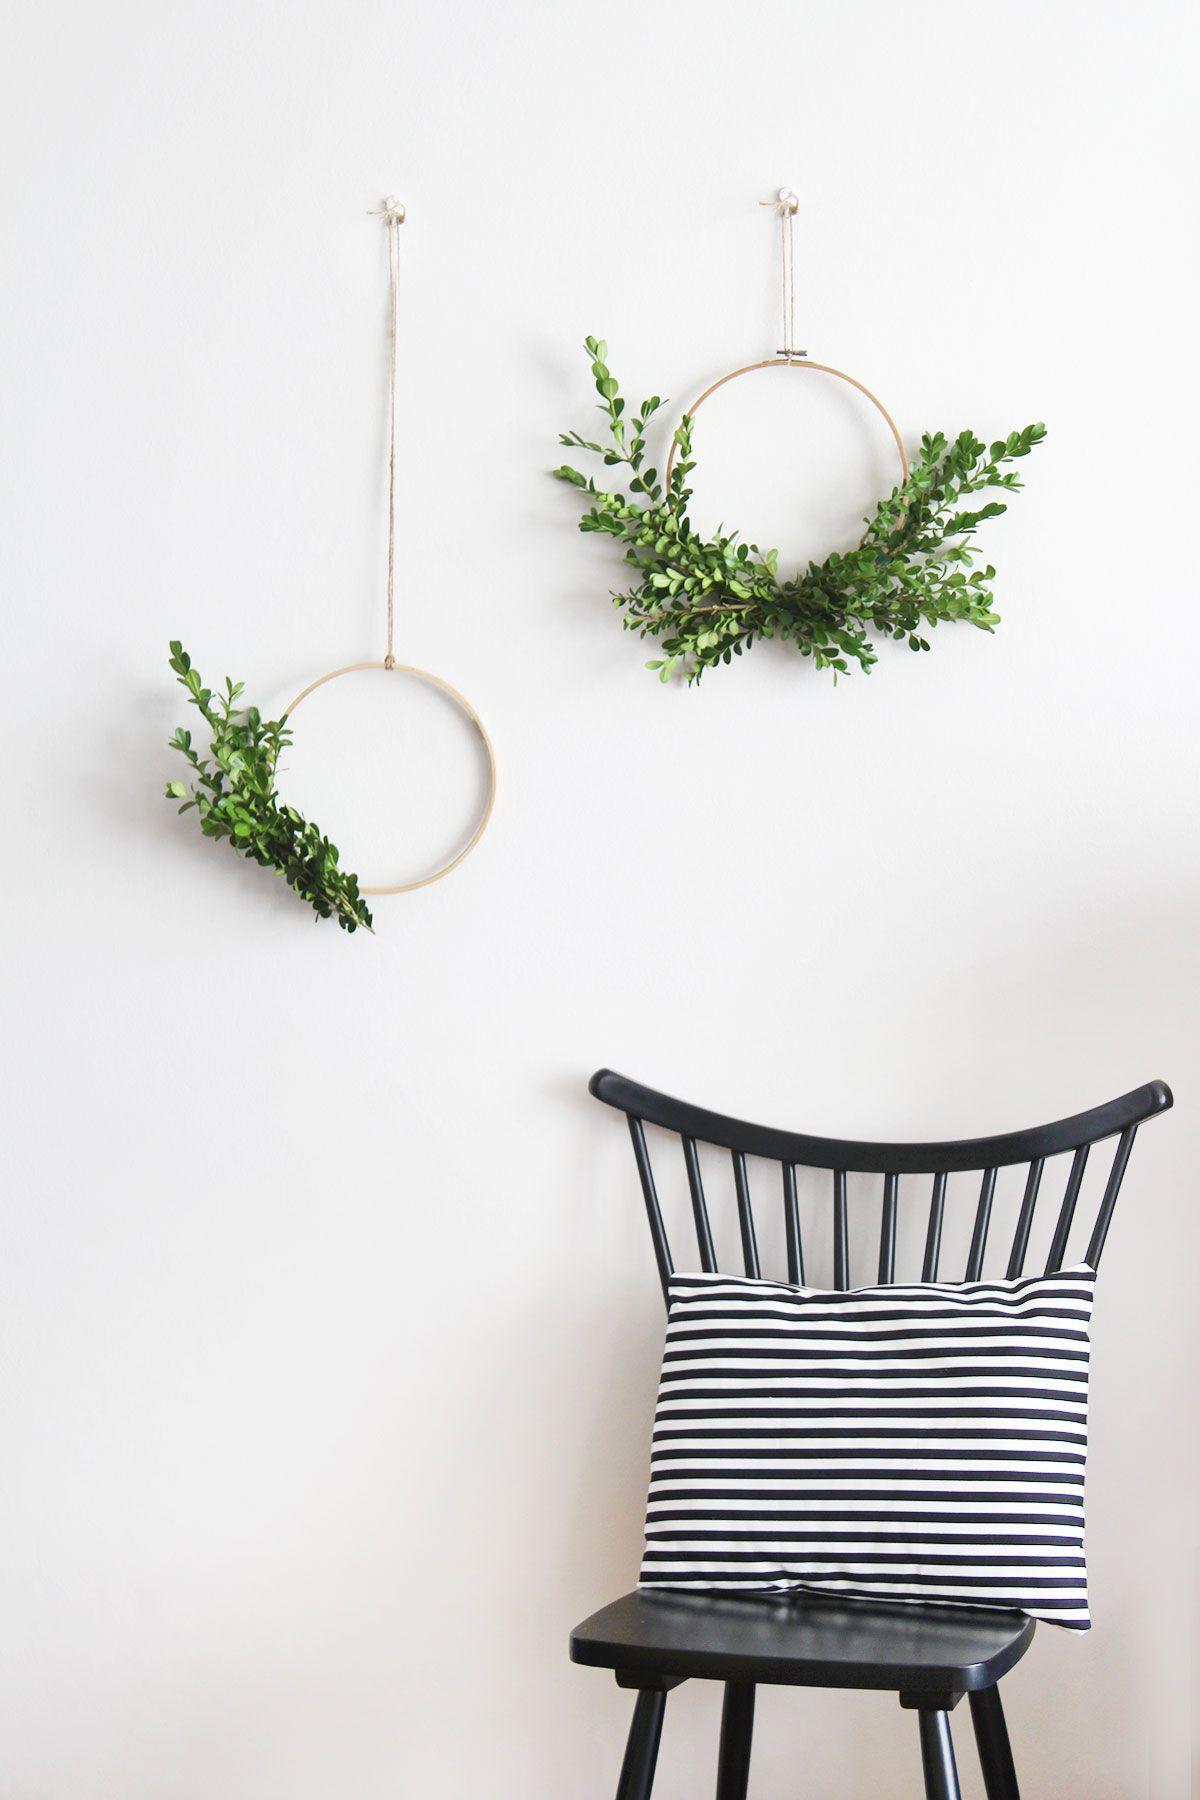 10 Minimalist Christmas Decorating Ideas to Incorporate Now